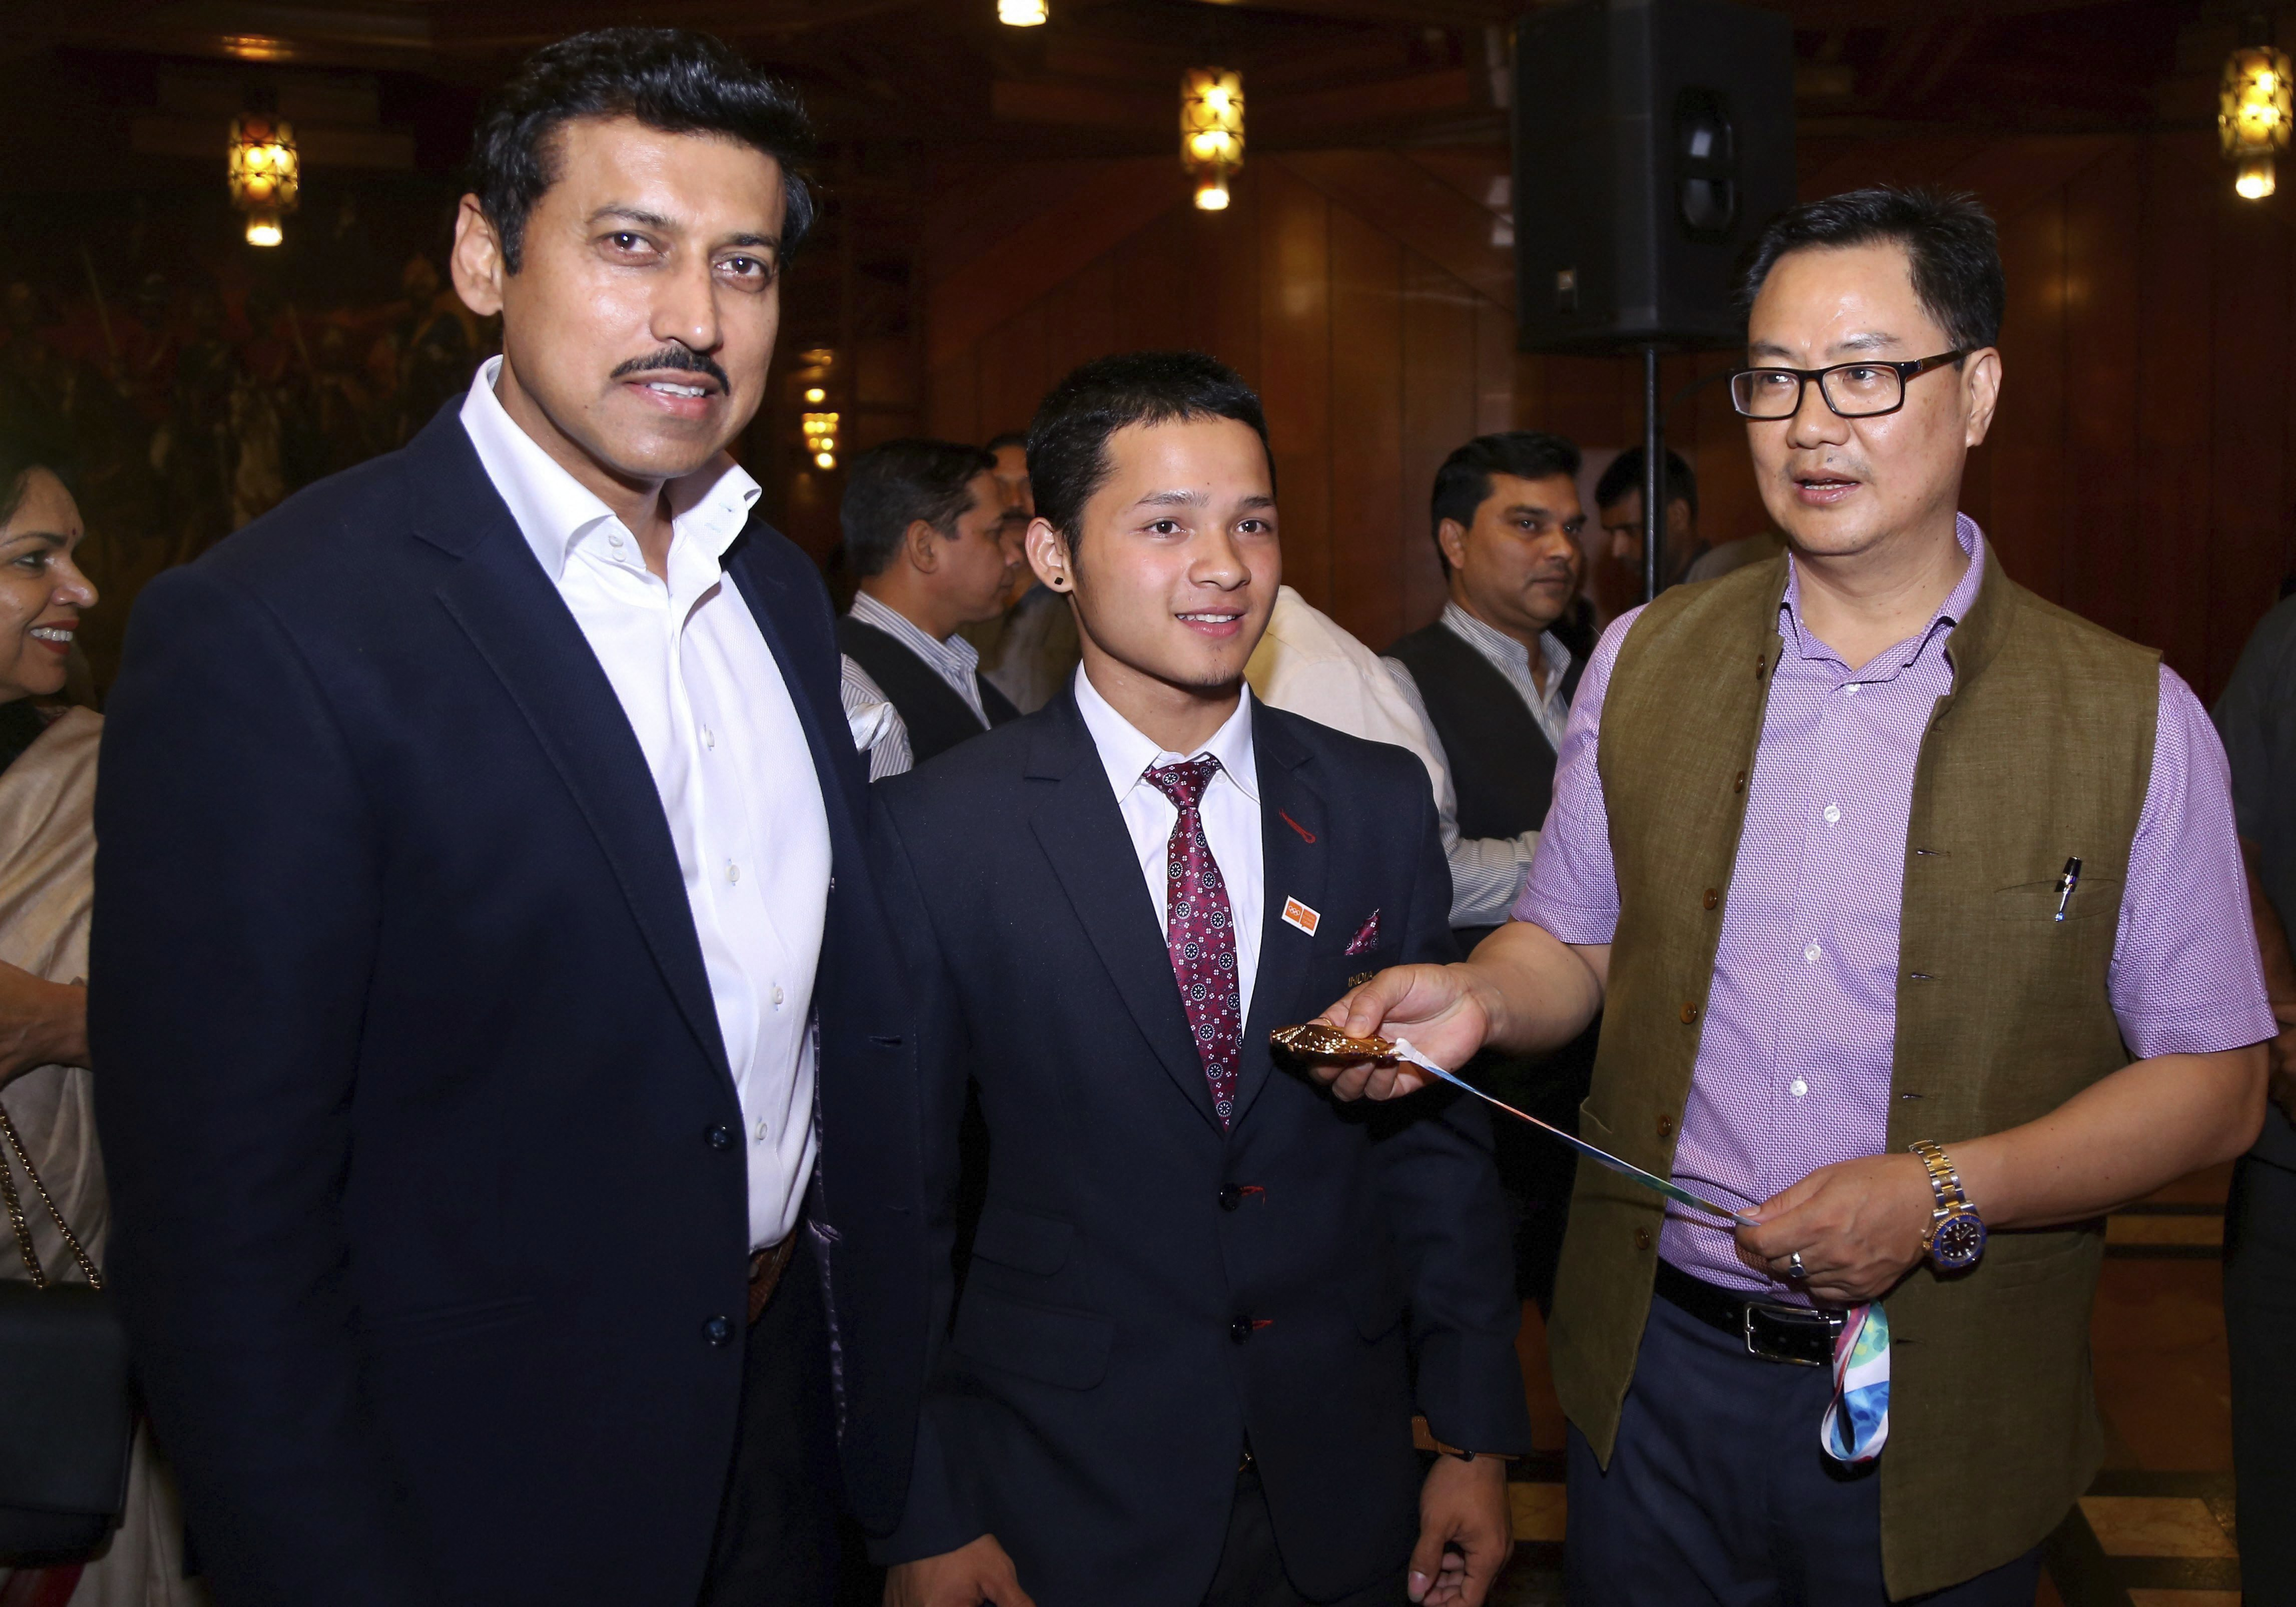 Minister of State for Youth Affairs & Sports, Rajyavardhan Singh Rathore and Minister of State for Home Affairs, Kiren Rijiju with Jeremy Lalrinnunga, gold medalist, weightlifting during the winners of the Summer Youth Olympics 2018 felicitation ceremony, in New Delhi - PTI